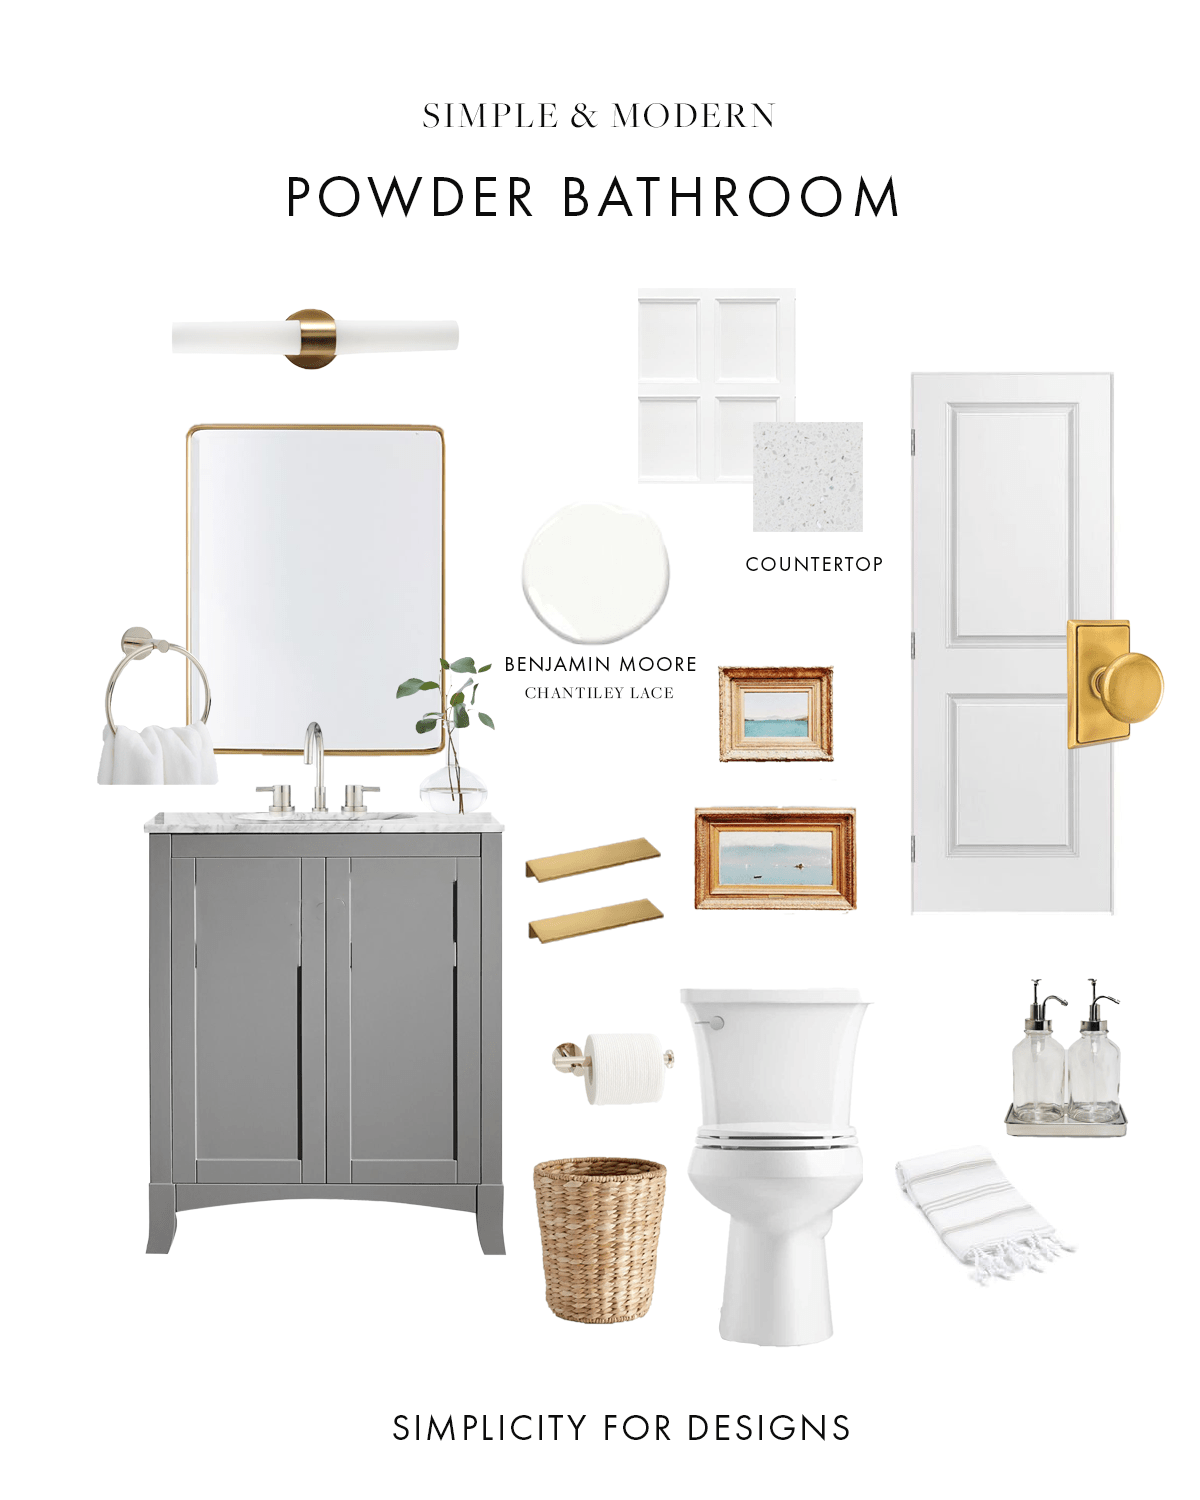 powder bathroom design board